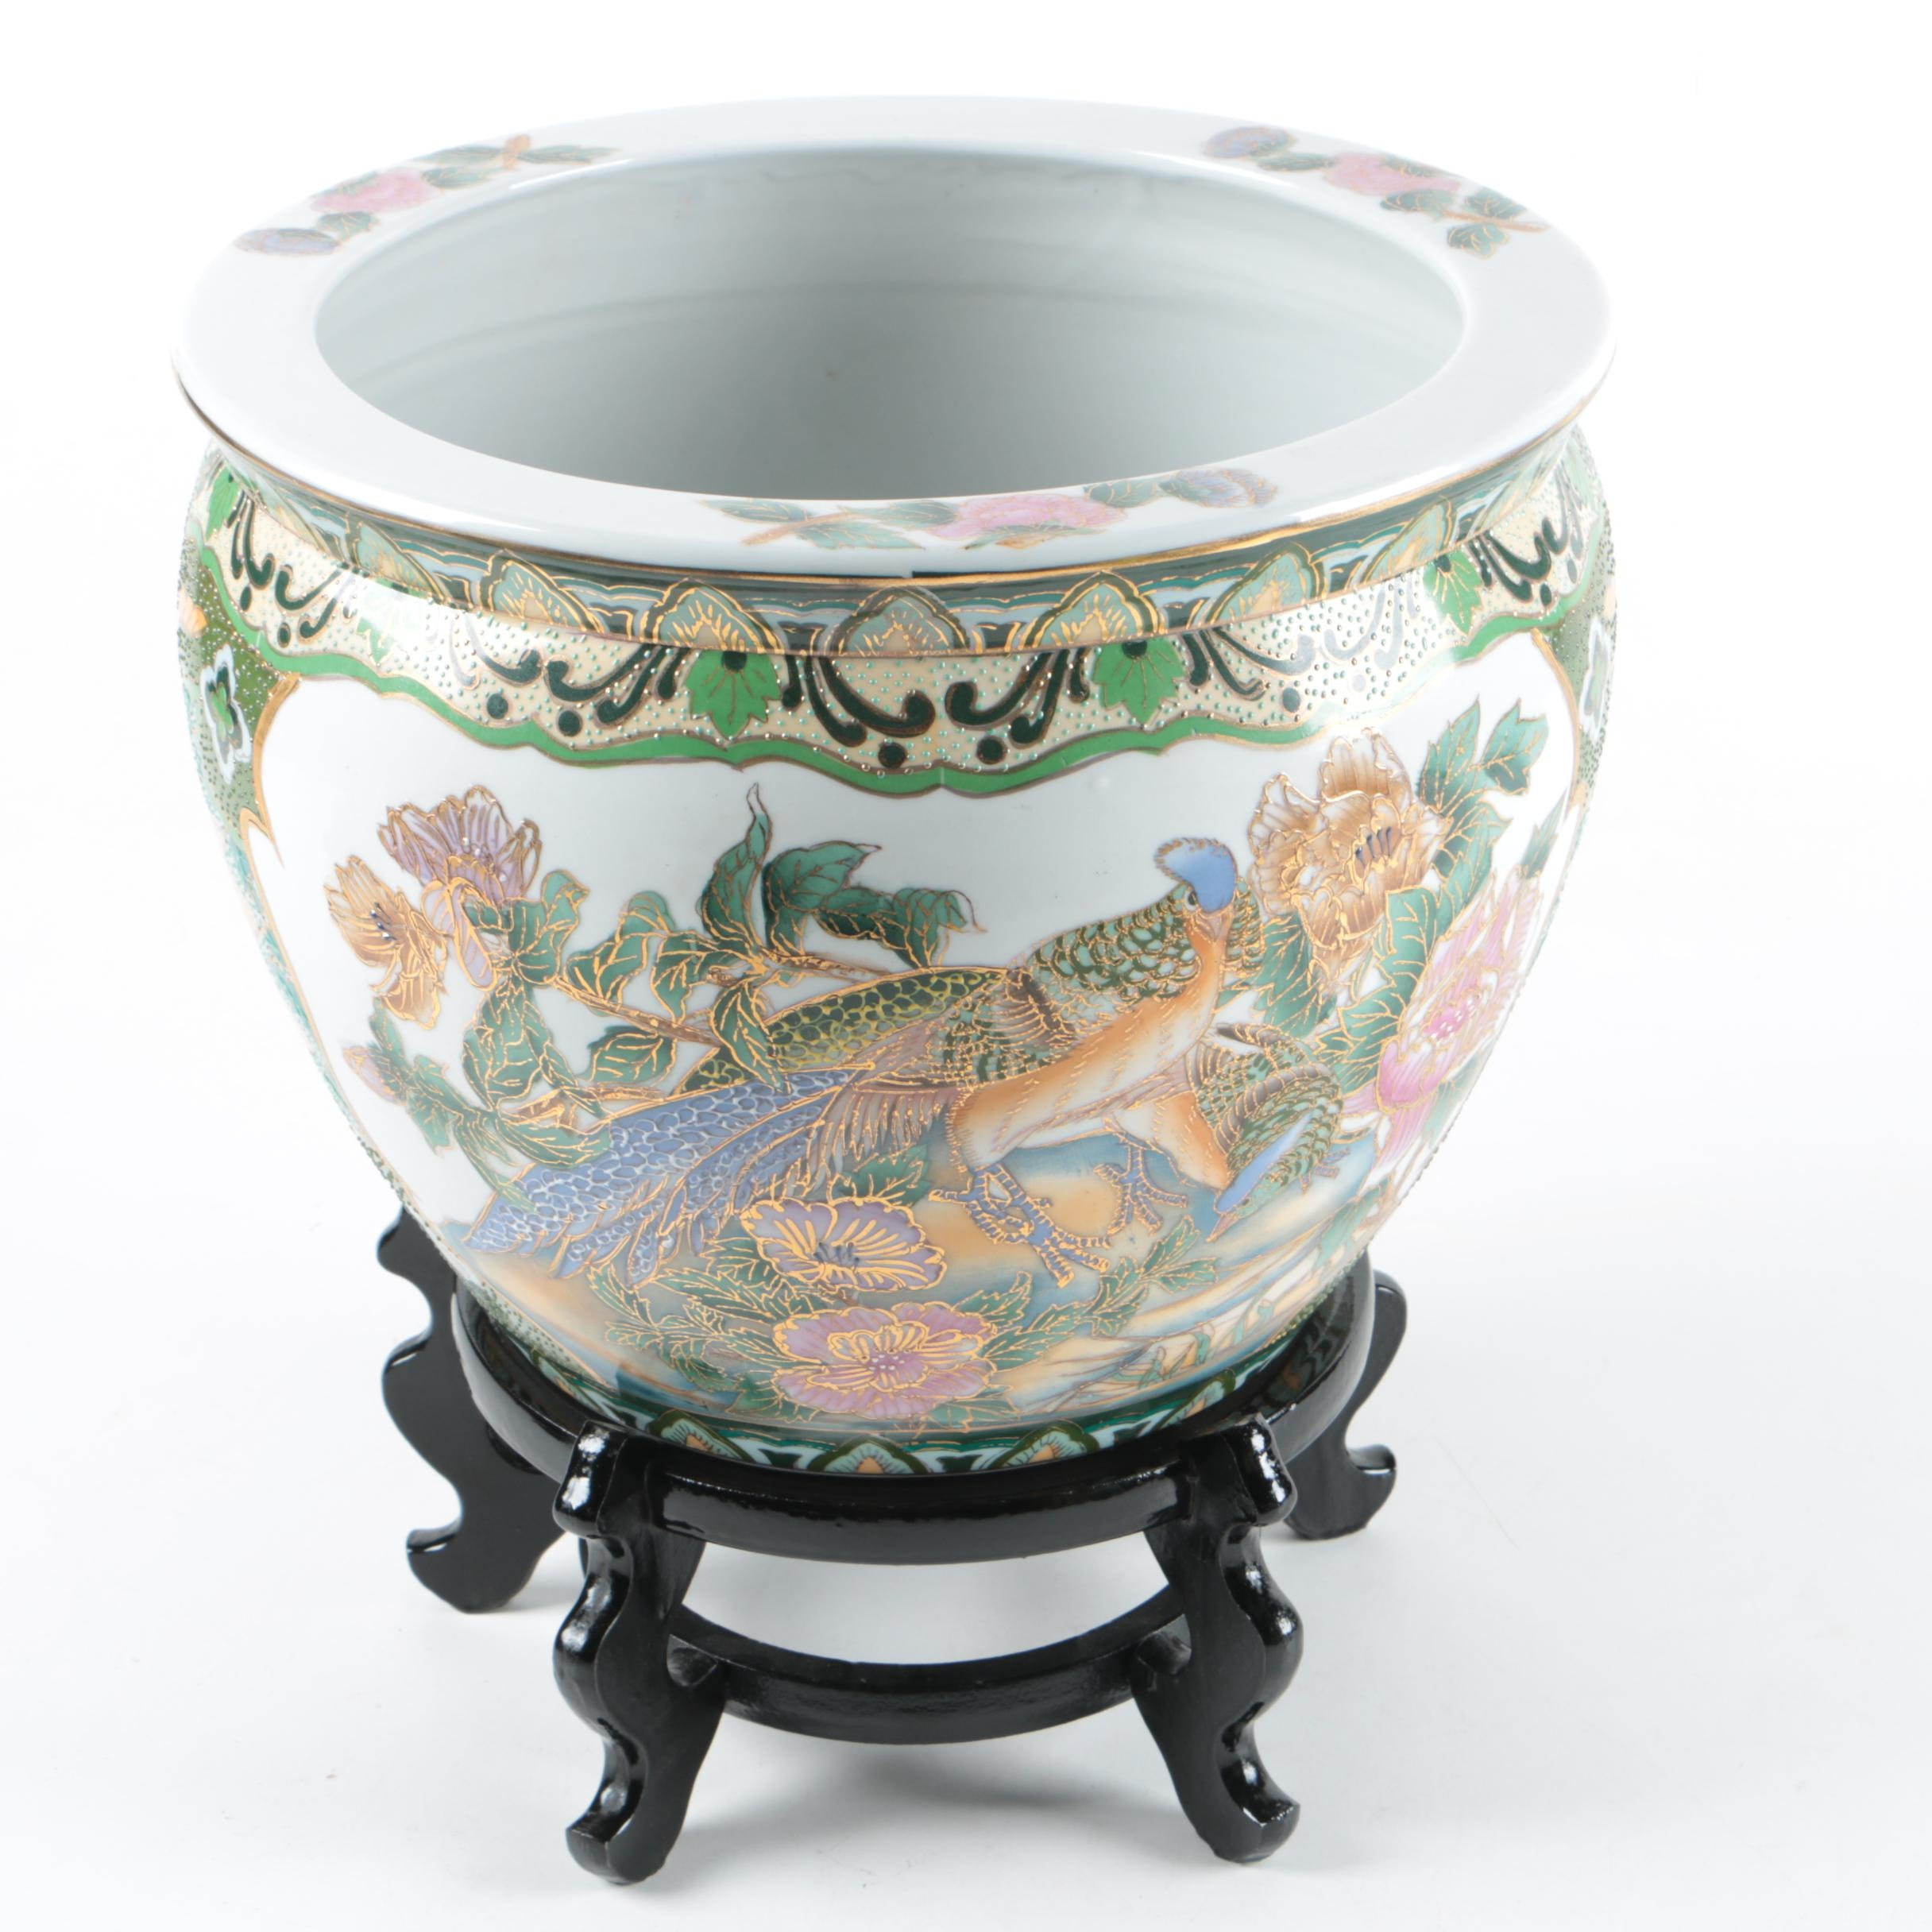 Asian Style Bird and Foliate Motif Ceramic Planter with Wooden Stand